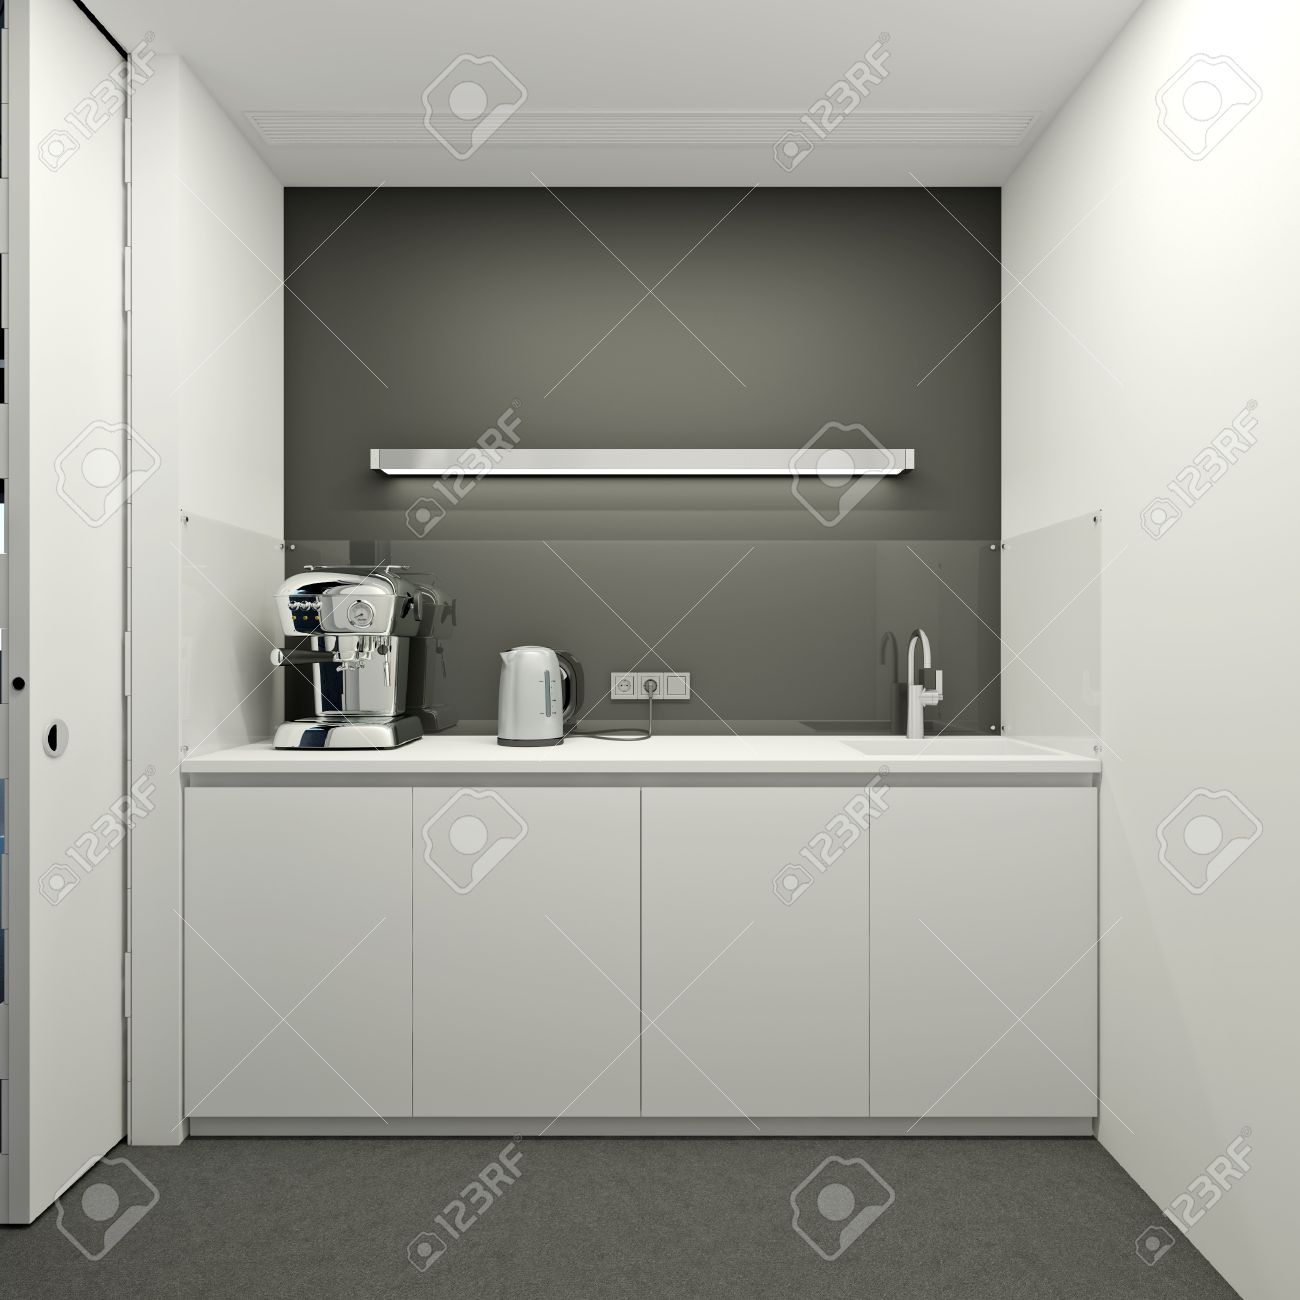 white modern office. Kitchen In A Modern Office White Color Stock Photo - 15136185